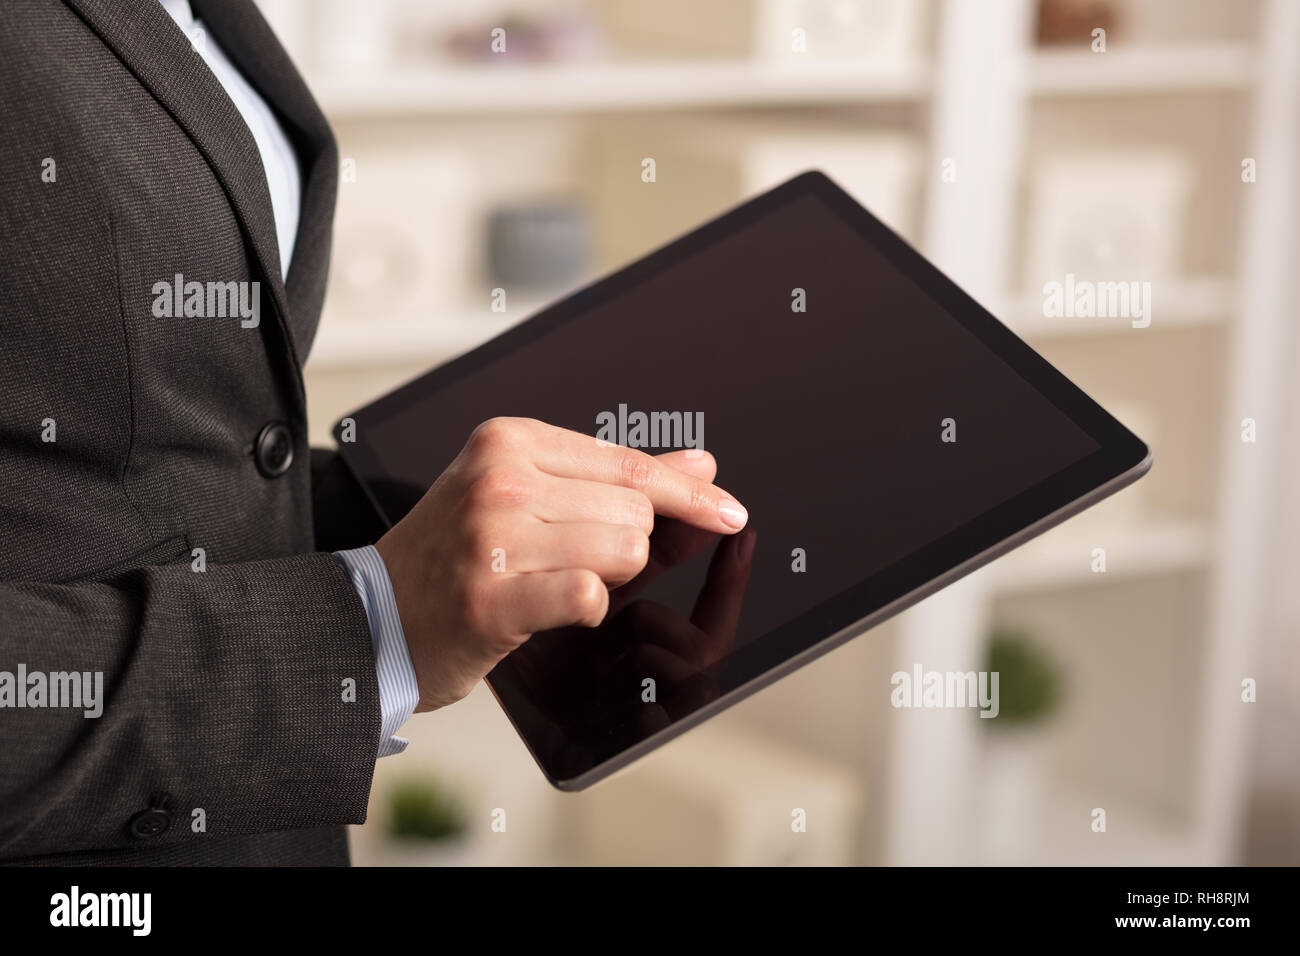 Business woman below chest using tablet in a homey environment  - Stock Image